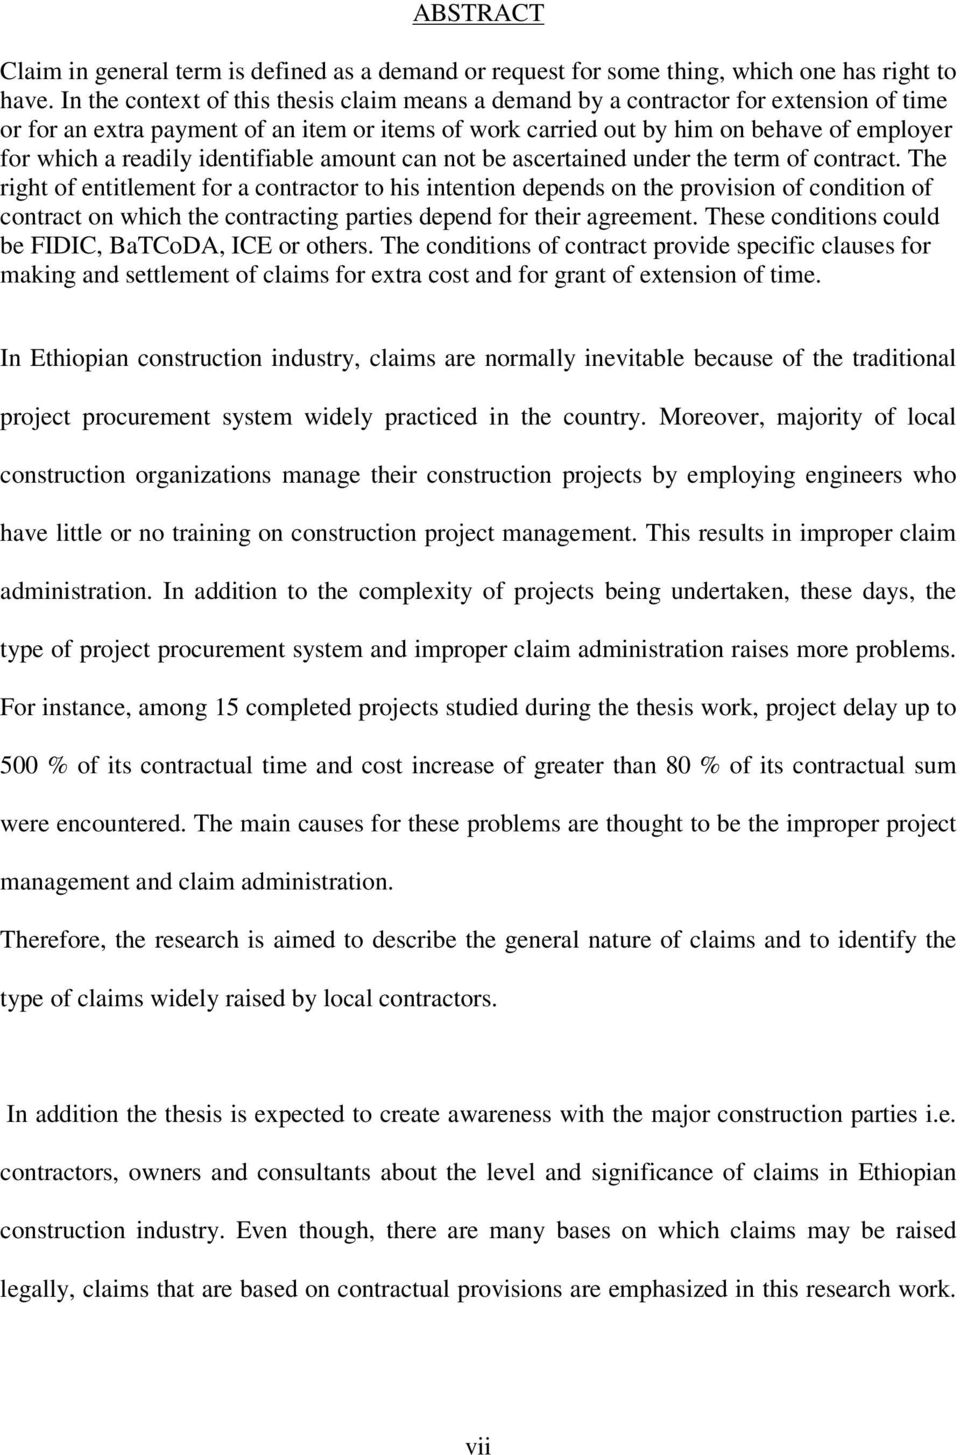 Claims in ethiopian construction industry pdf readily identifiable amount can not be ascertained under the term of contract fandeluxe Images